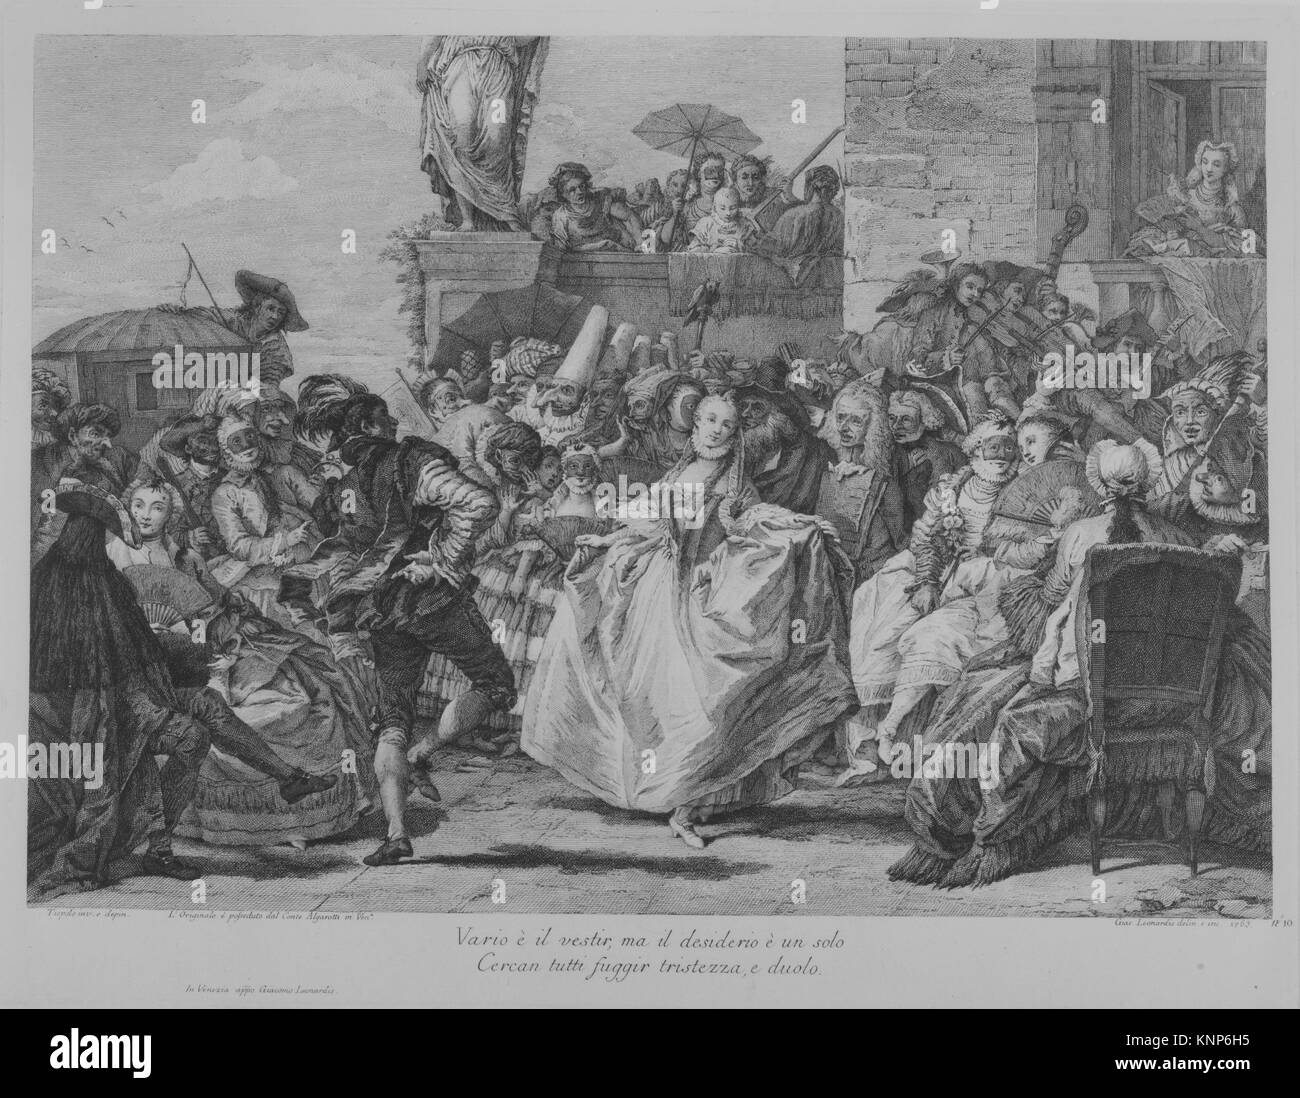 The Minuet. Series/Portfolio: Plate 10 from Selection of Pictures from Venetian Collections, series of nineteen - Stock Image